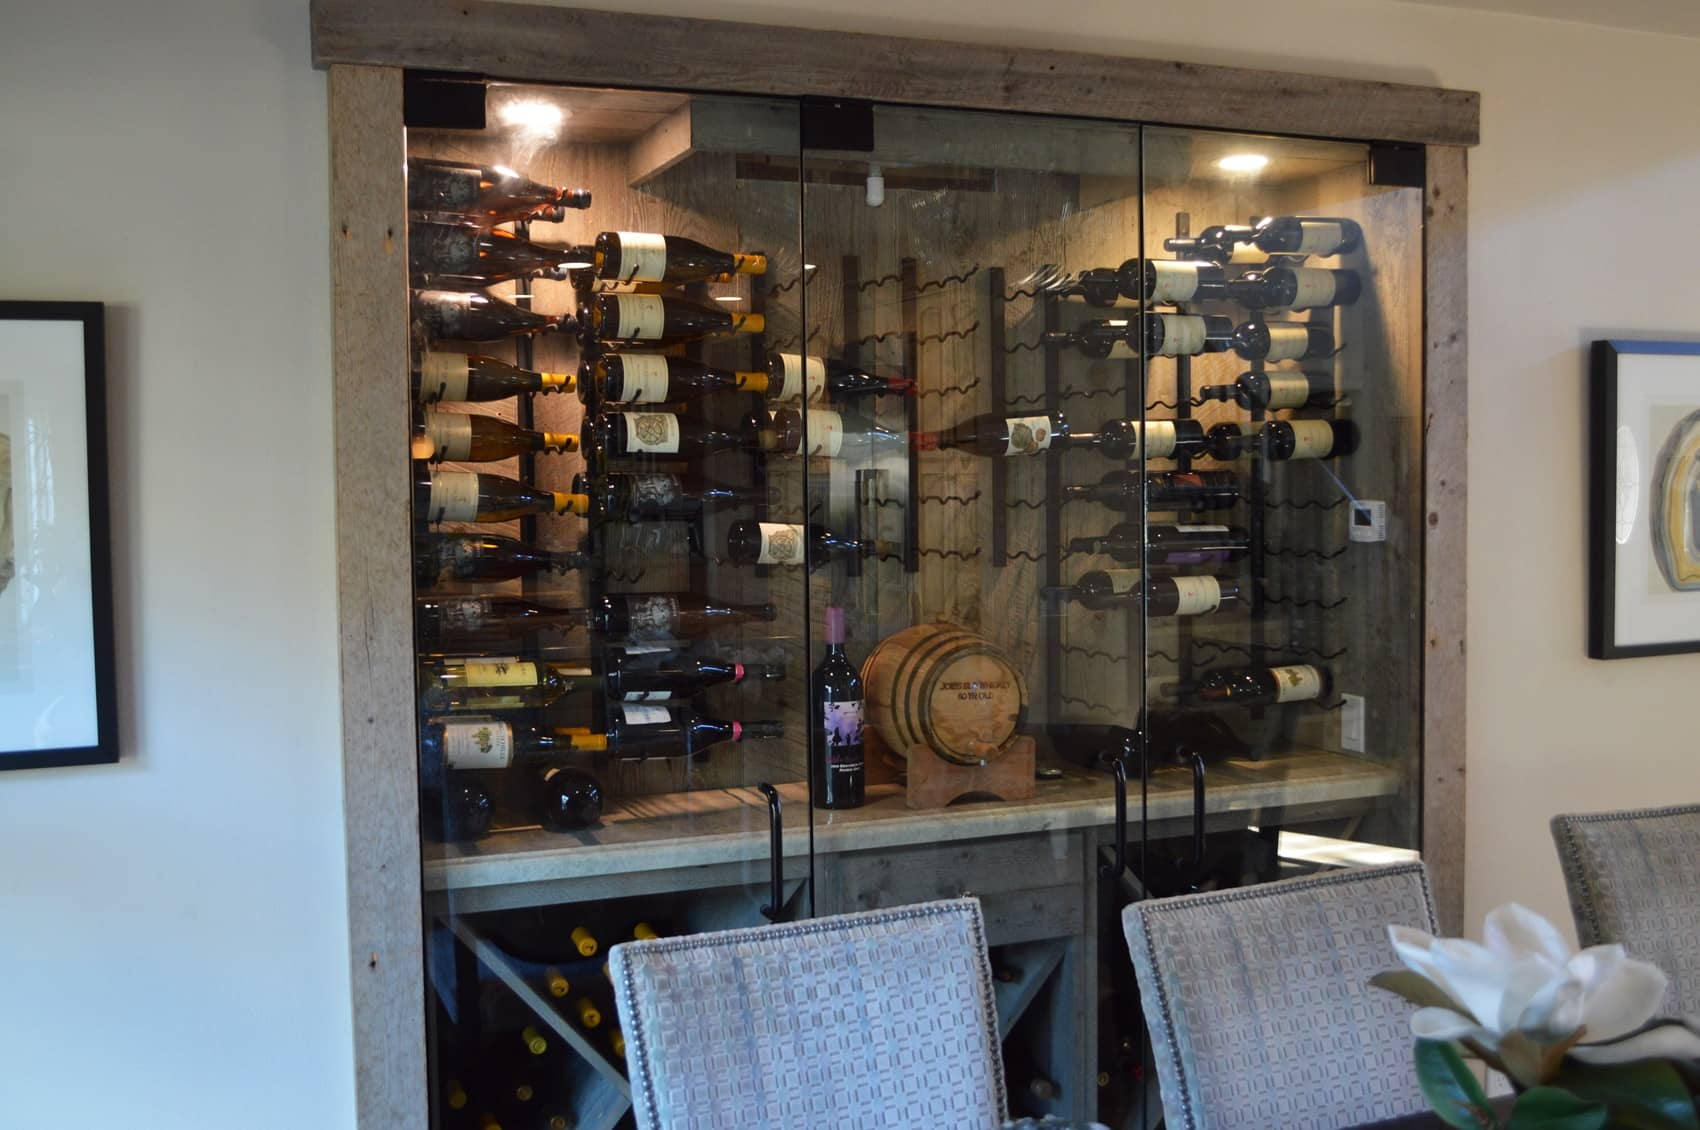 Variations in the shapes, type and size of the wine racking system gives the owner the flexibility on what of wine he could store in it.